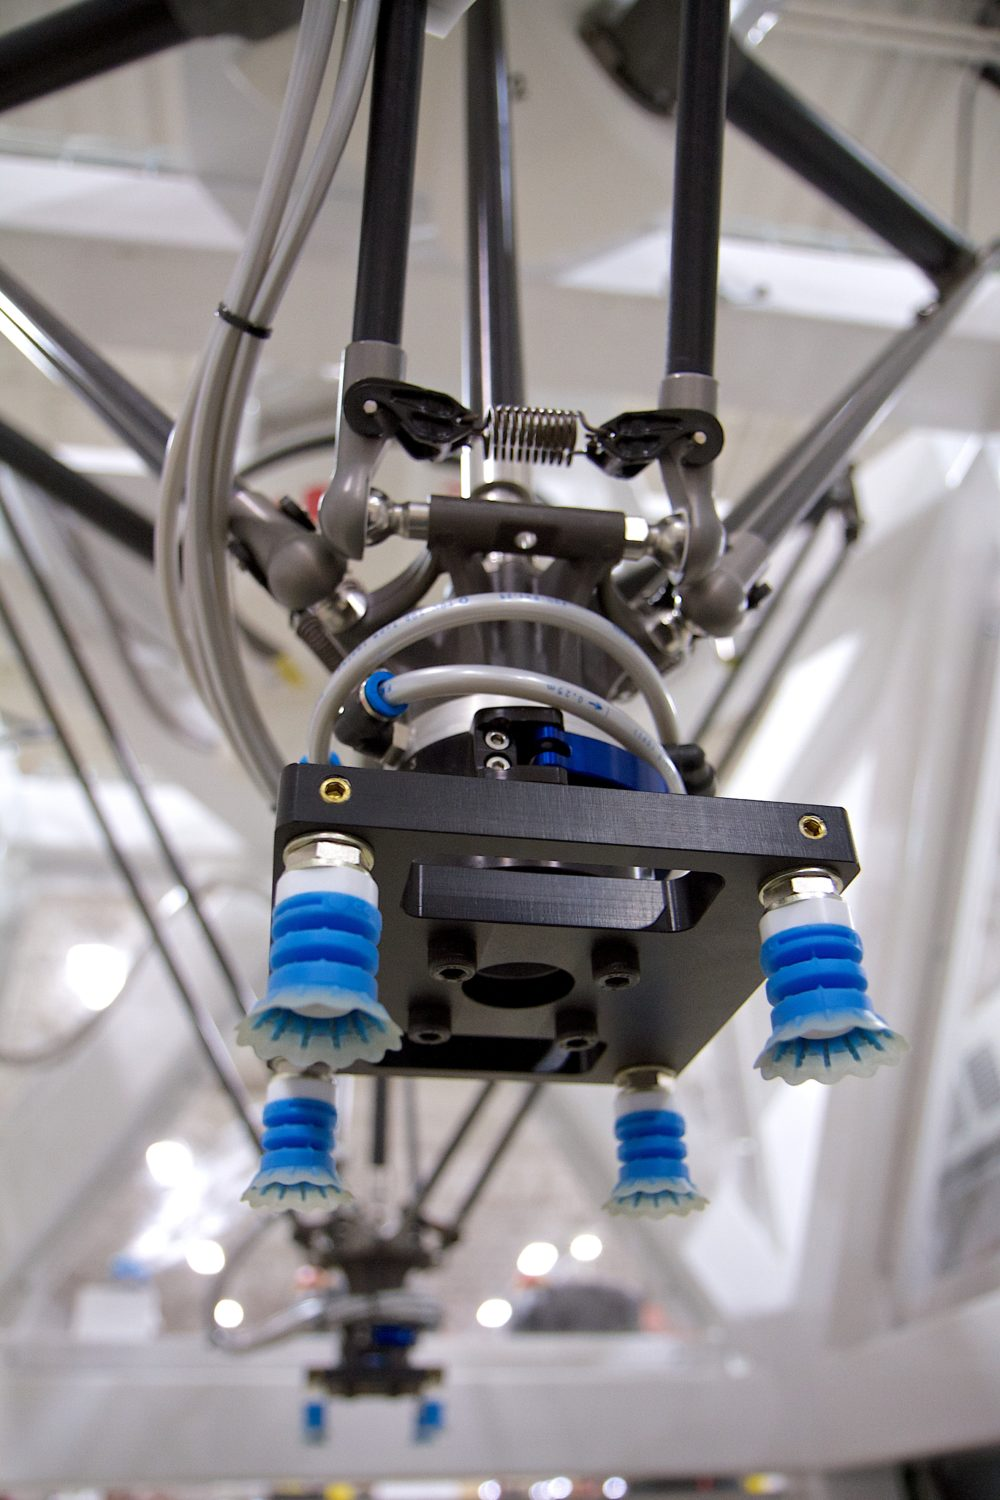 Robotic system with end of arm tool